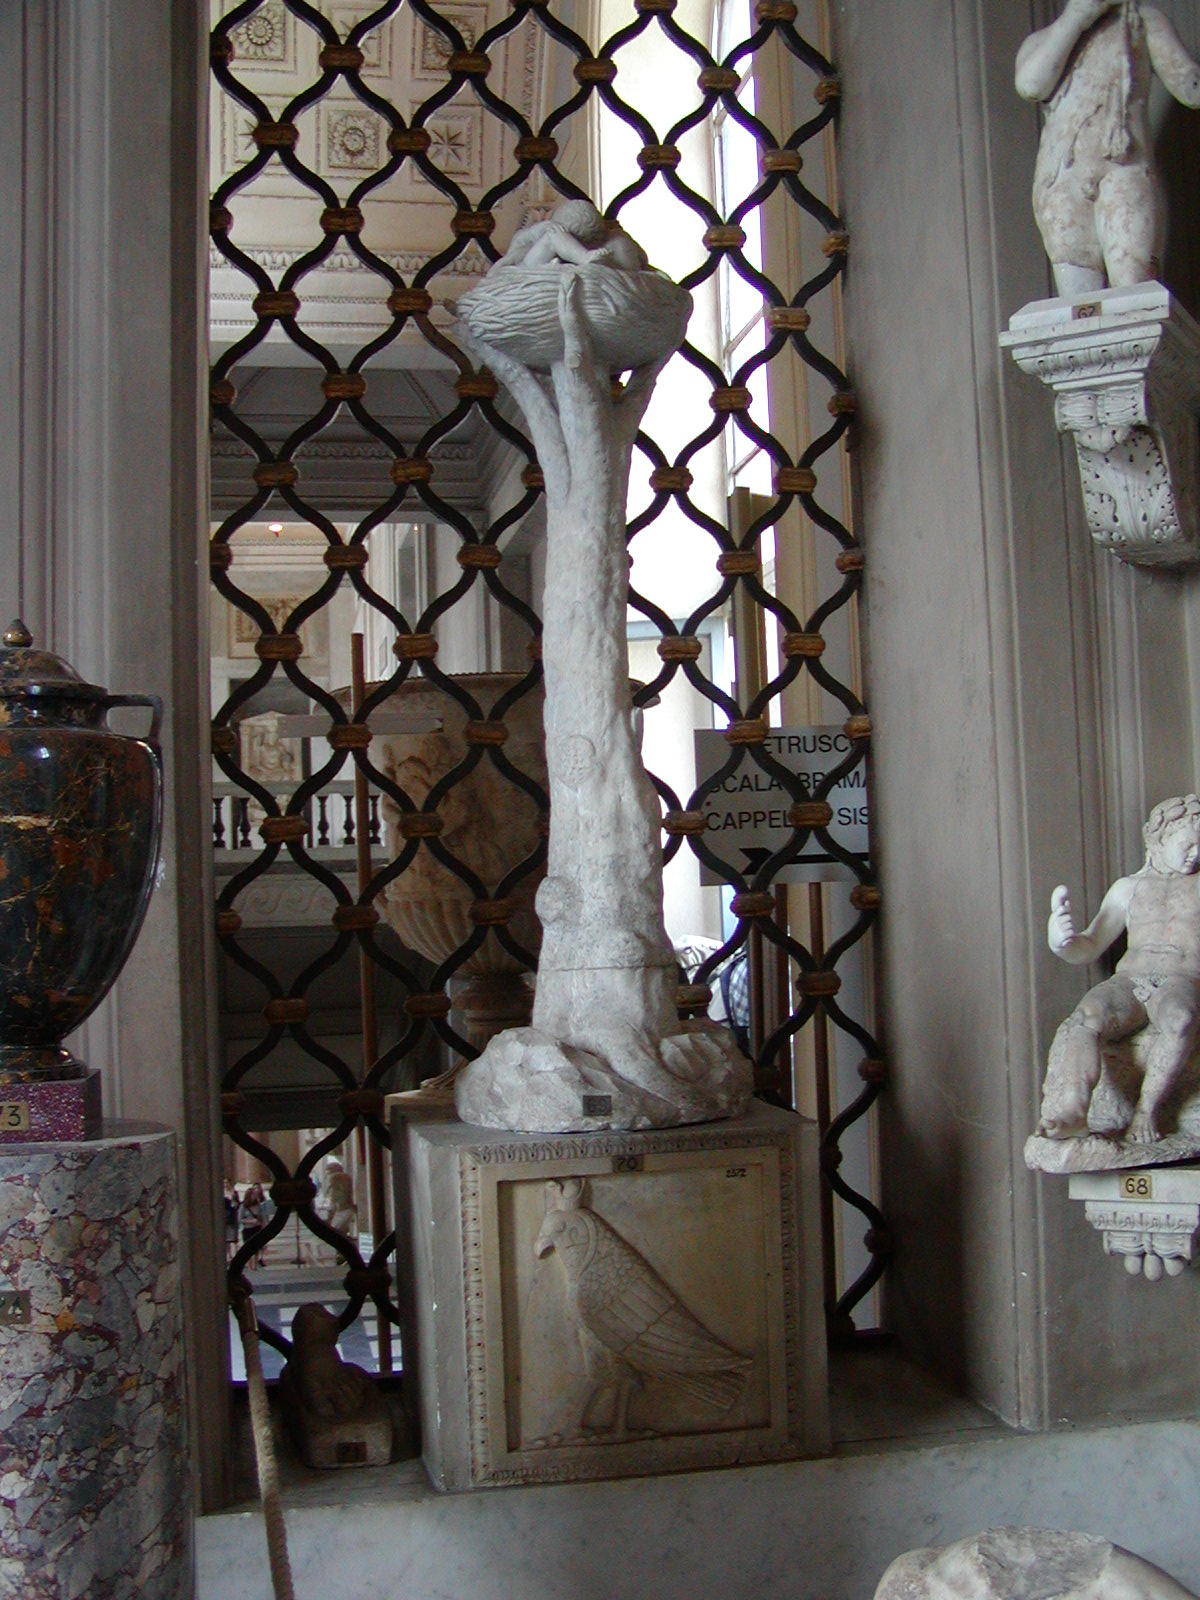 Gallery of the Candelabra - 2002-09-10-145348